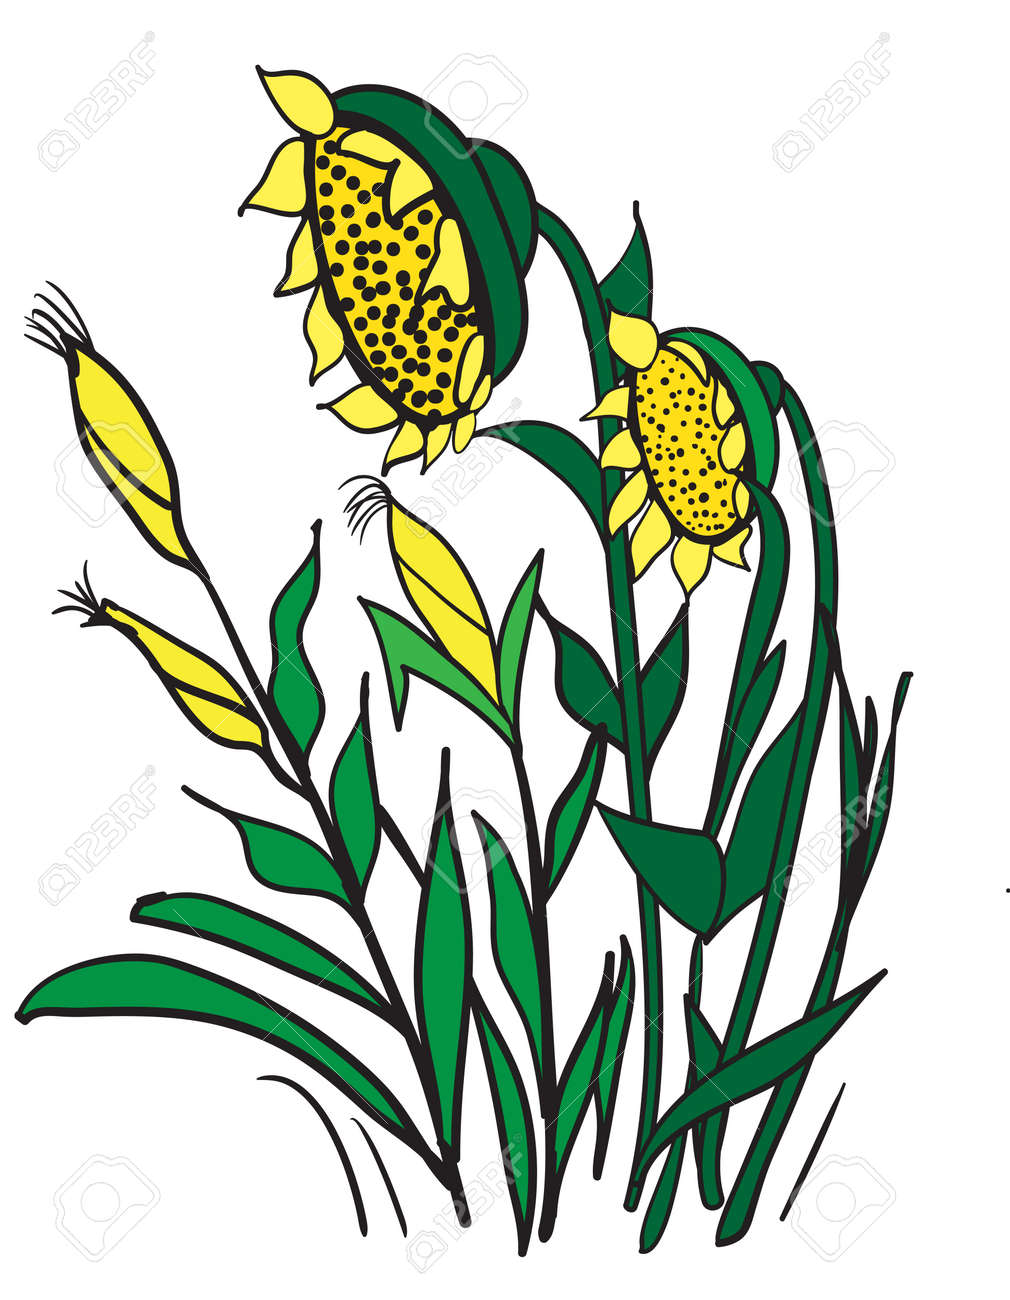 Illustration Of Cartoon Corn And Sunflowers On A White Background Stock Vector